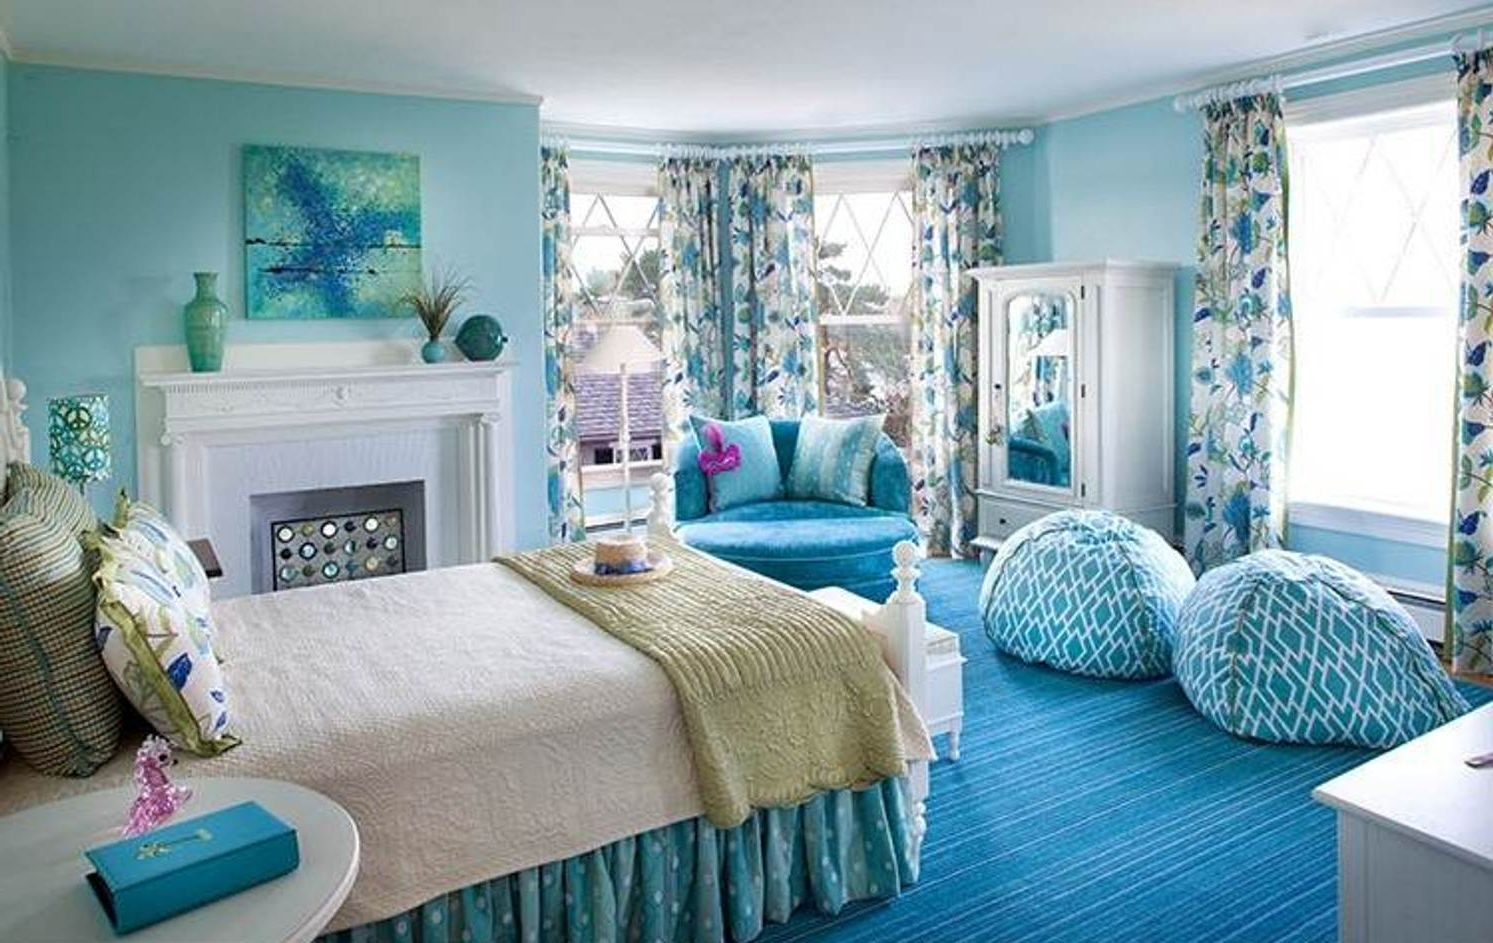 Comfy Chairs For Girls Fancy Blue Bedroom With A Pair Of Cute Bean Bag Chairs